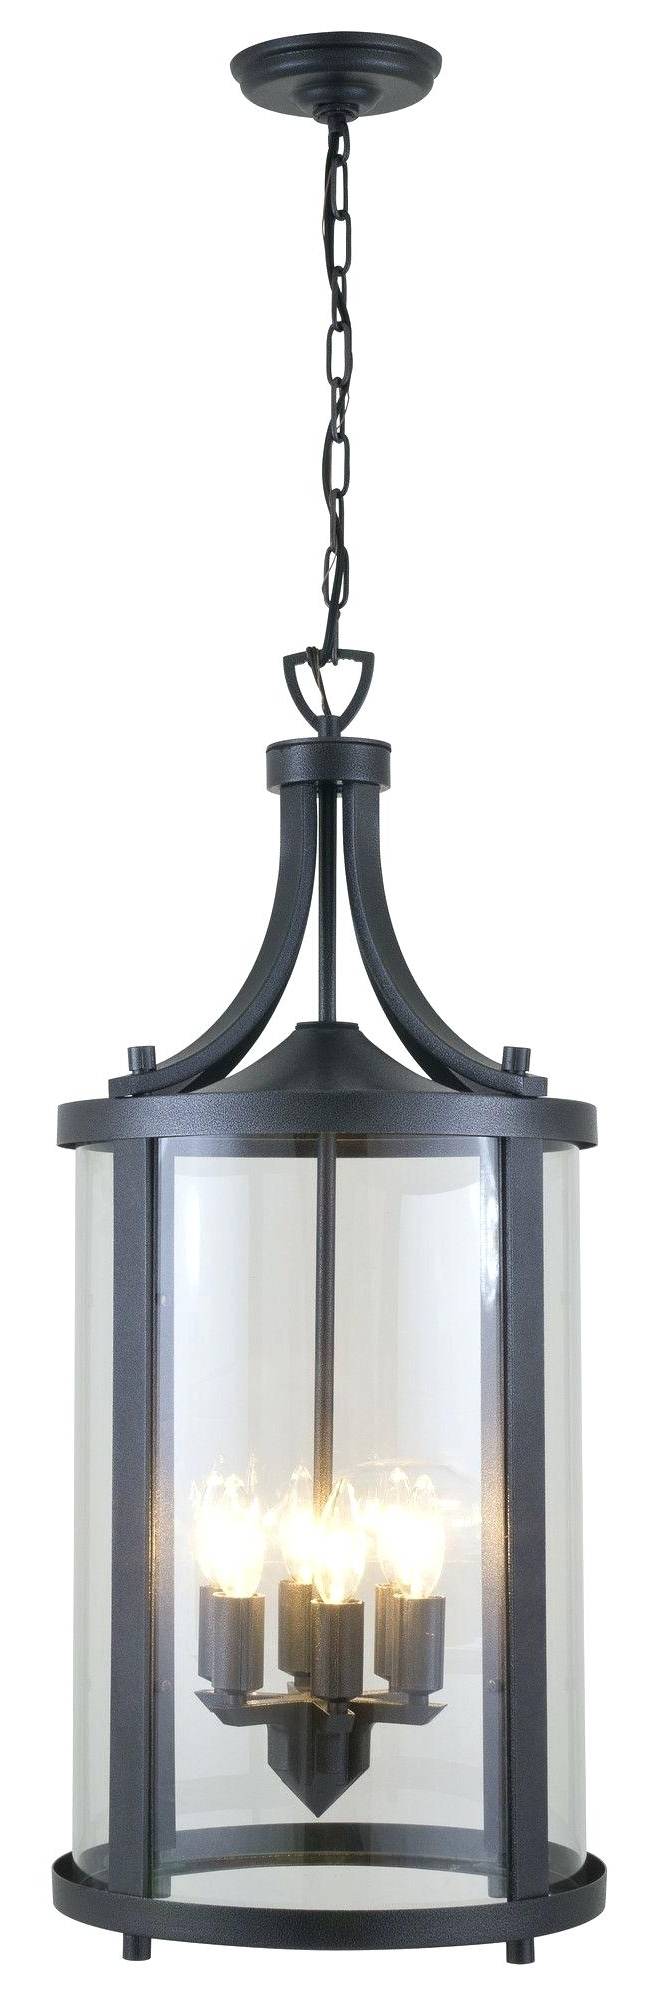 Recent Outdoor Hanging Lanterns Candle Uk For Patio – Biophilessurf Intended For Solar Powered Outdoor Hanging Lanterns (View 12 of 20)